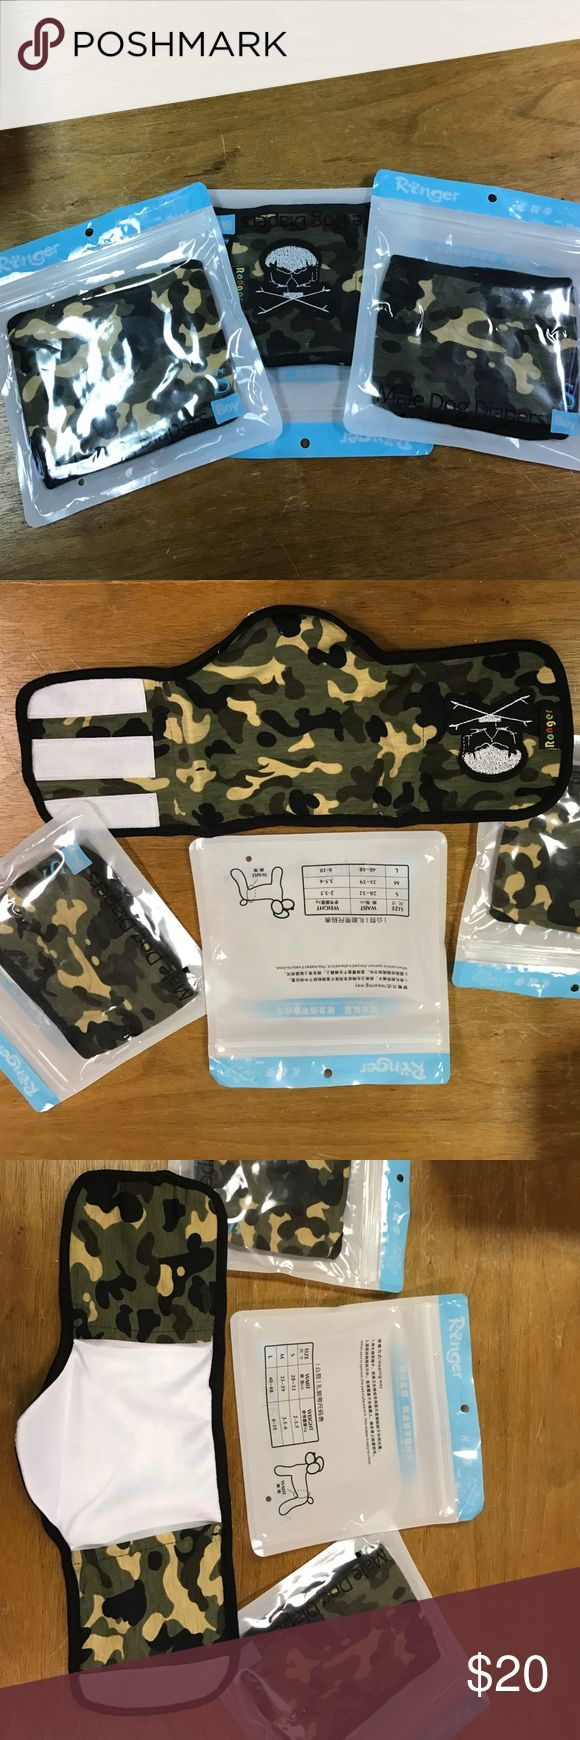 Male Doggie Diapers Small Camo washable doggie diapers with embroidered skull - brand new. Never used. I have a 15 lb shih-tzu and they didn't fit him and I couldn't return. Comes with three of them. Price is firm. Other